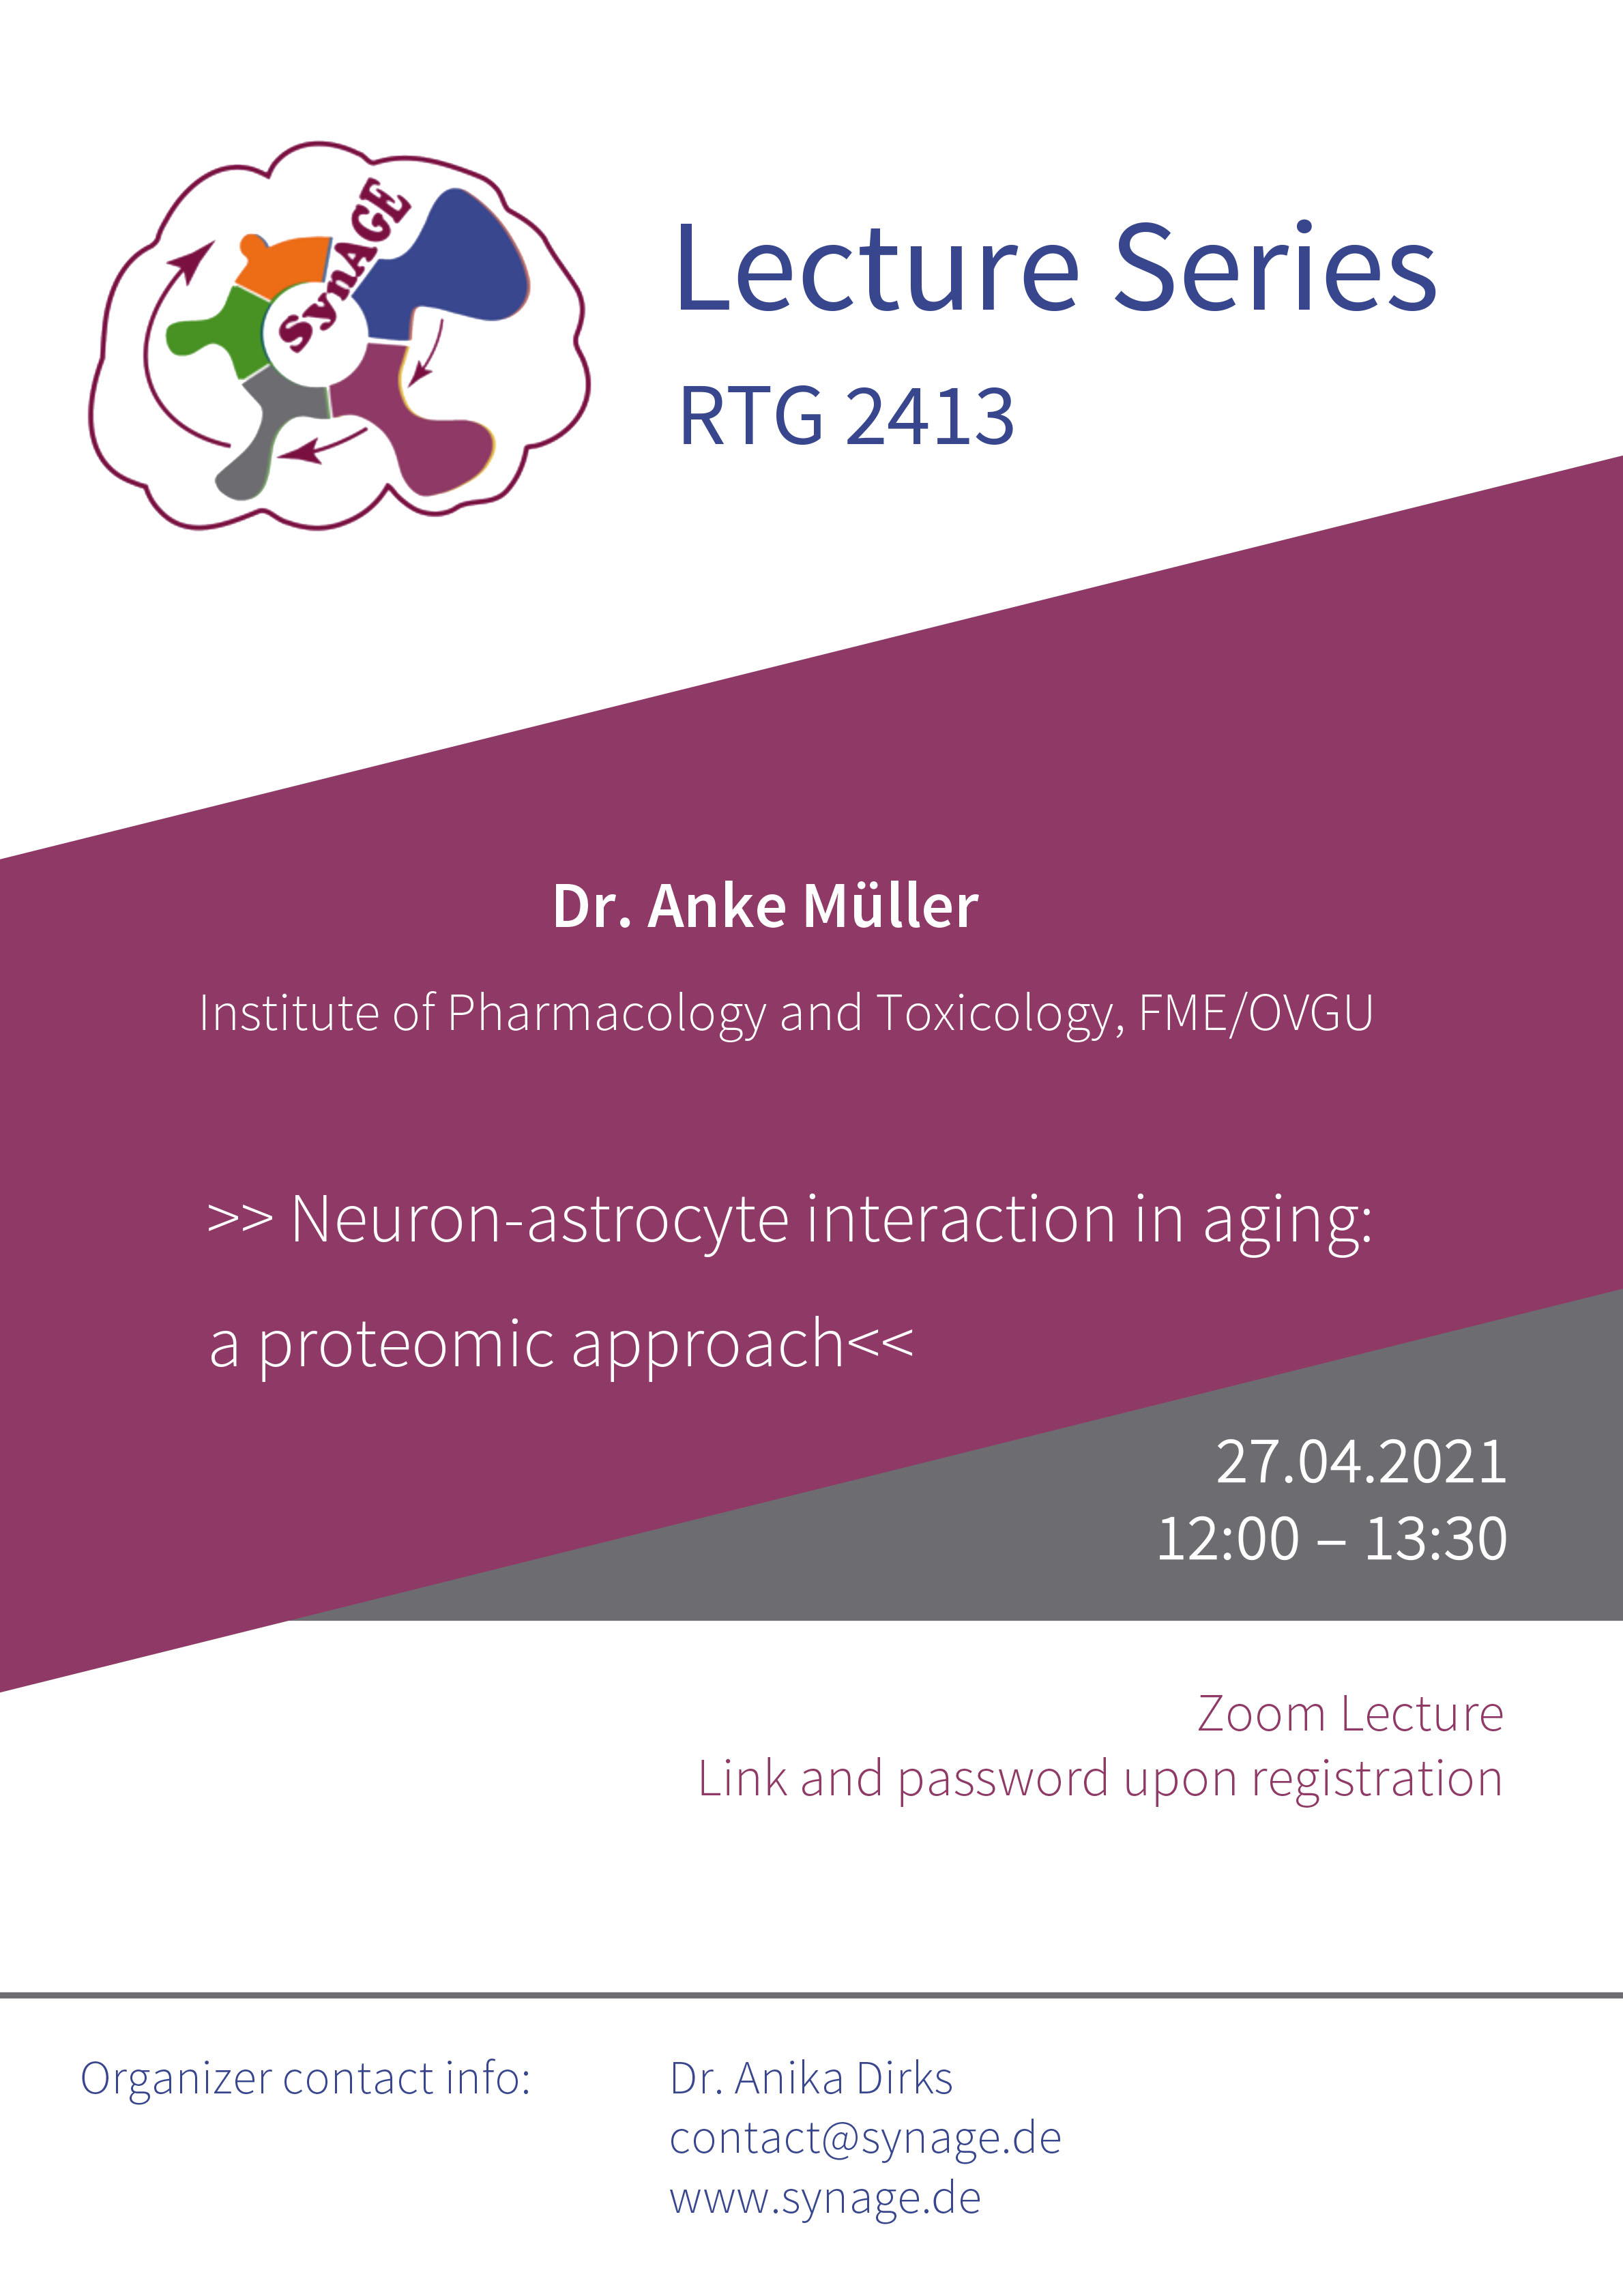 SynAGE Lecture: Neuron-astrocyte interaction in aging: a proteomic approach @ Zoom